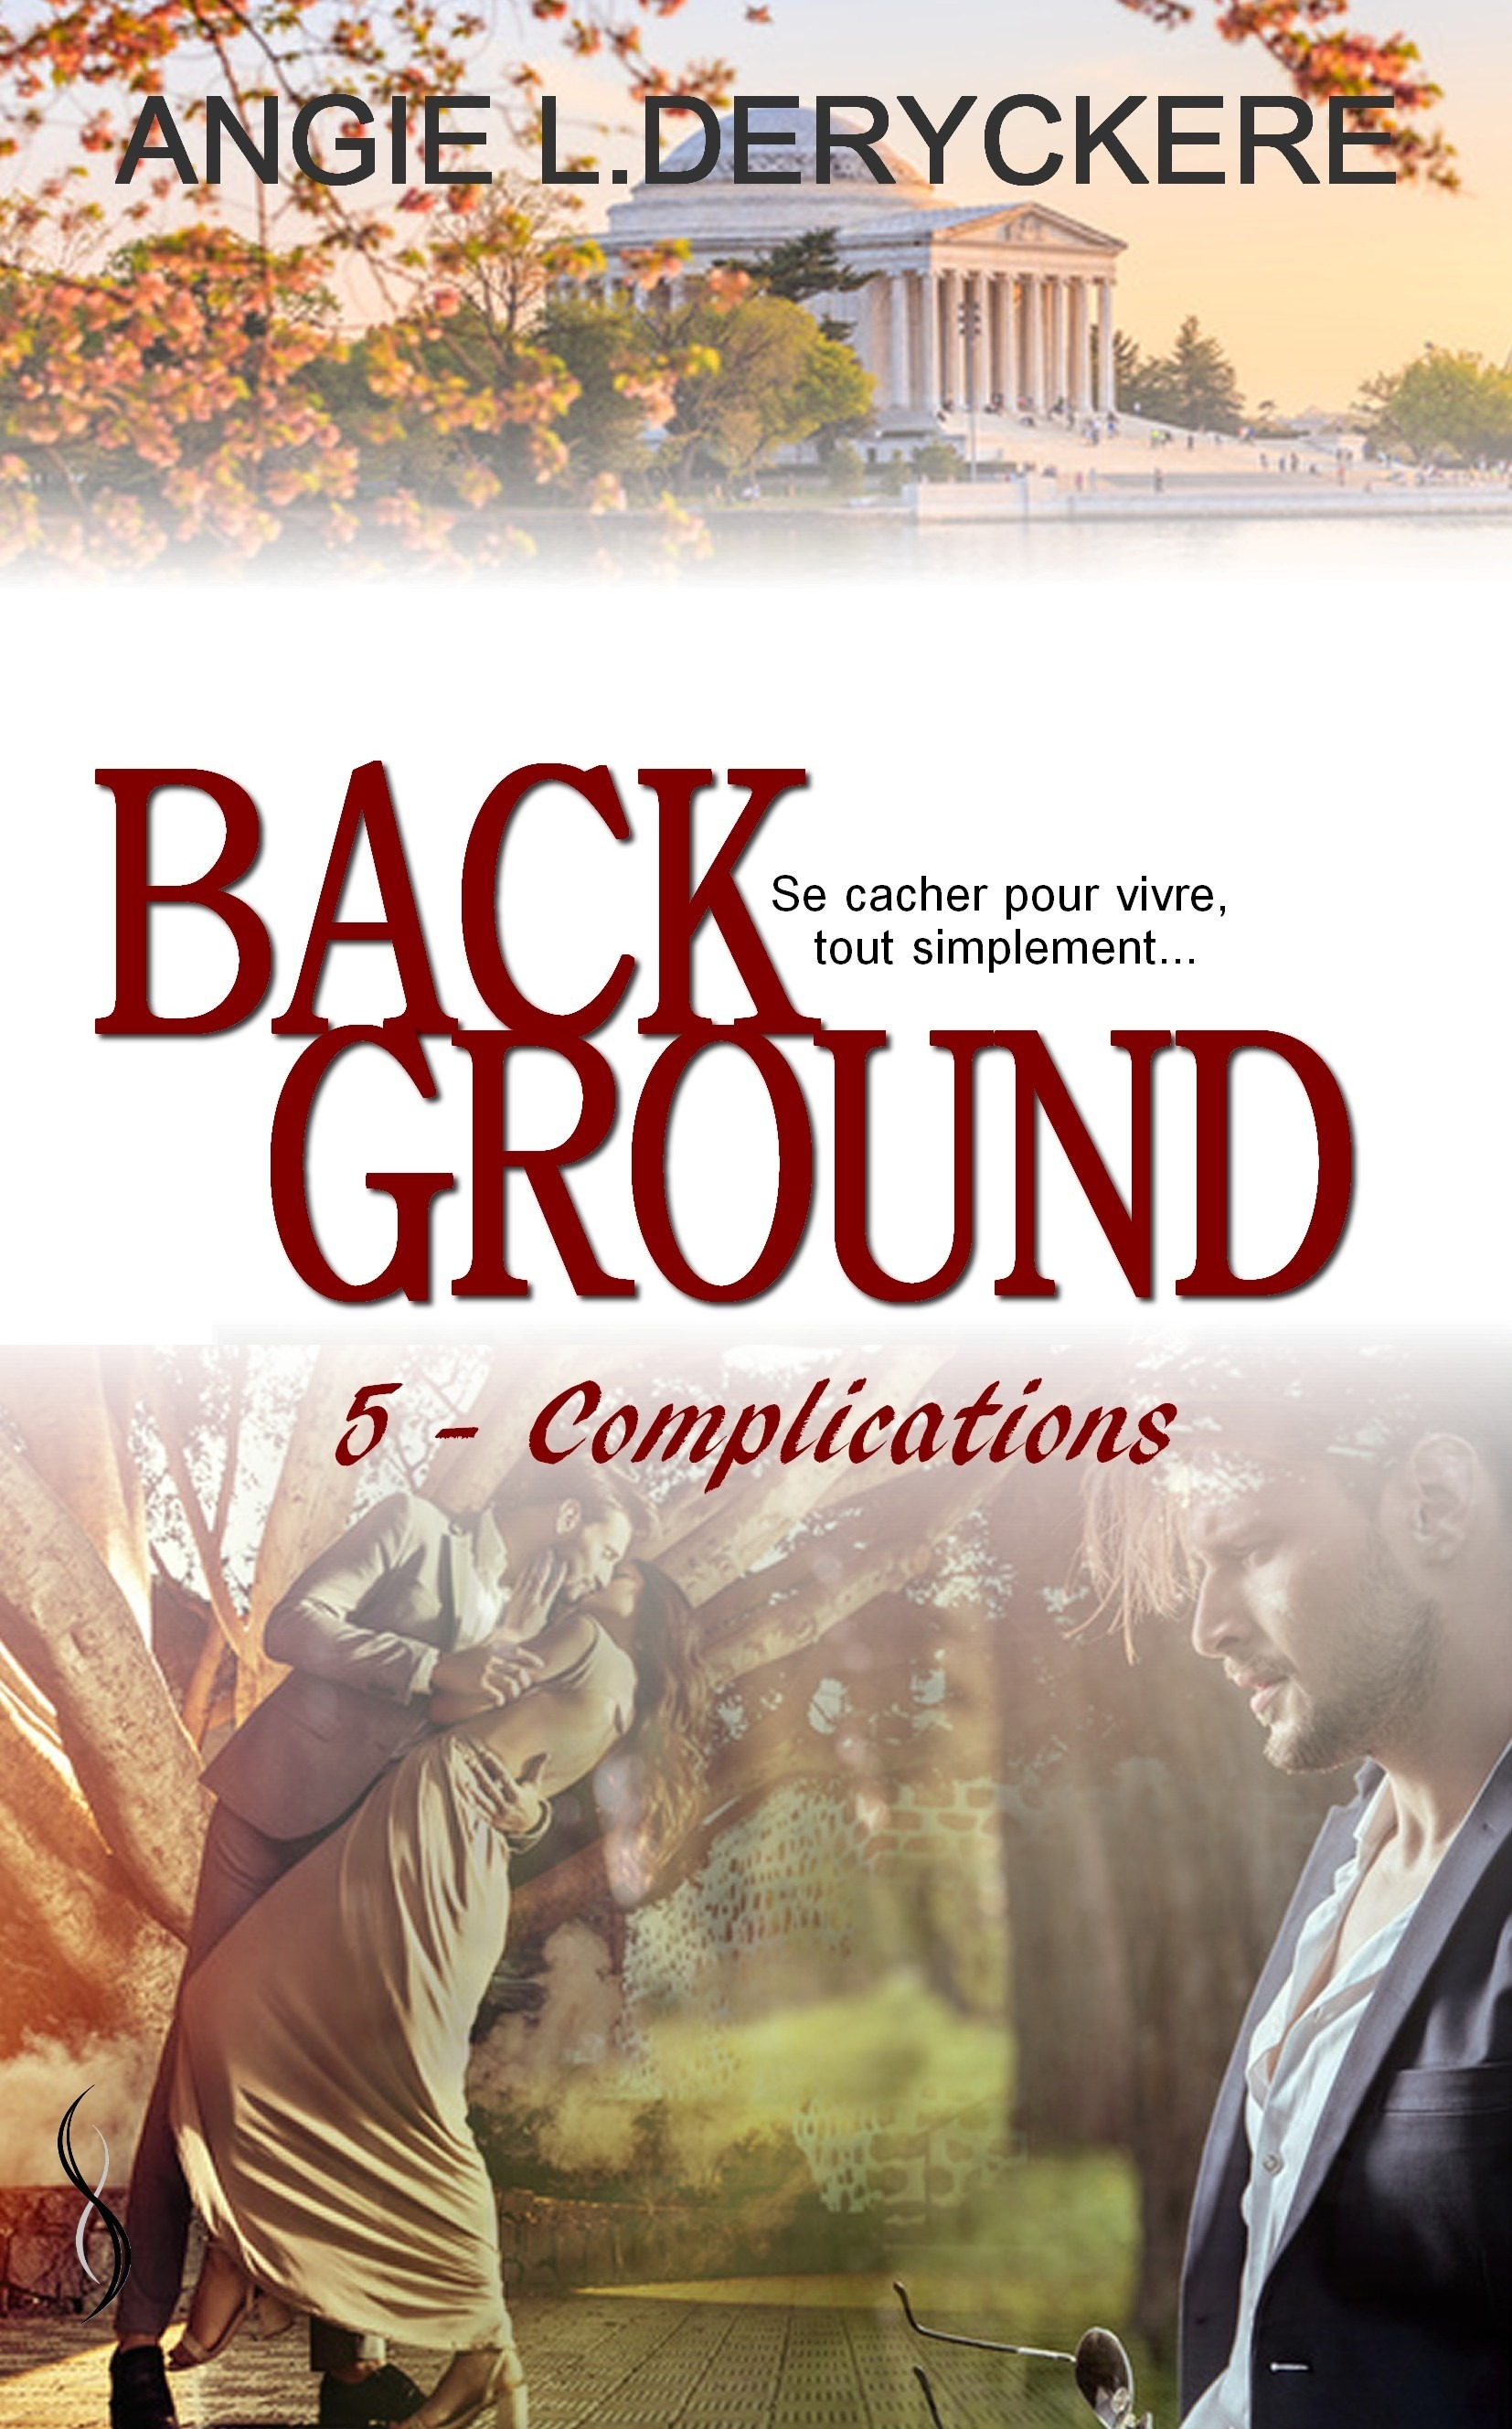 Background 5, COMPLICATIONS